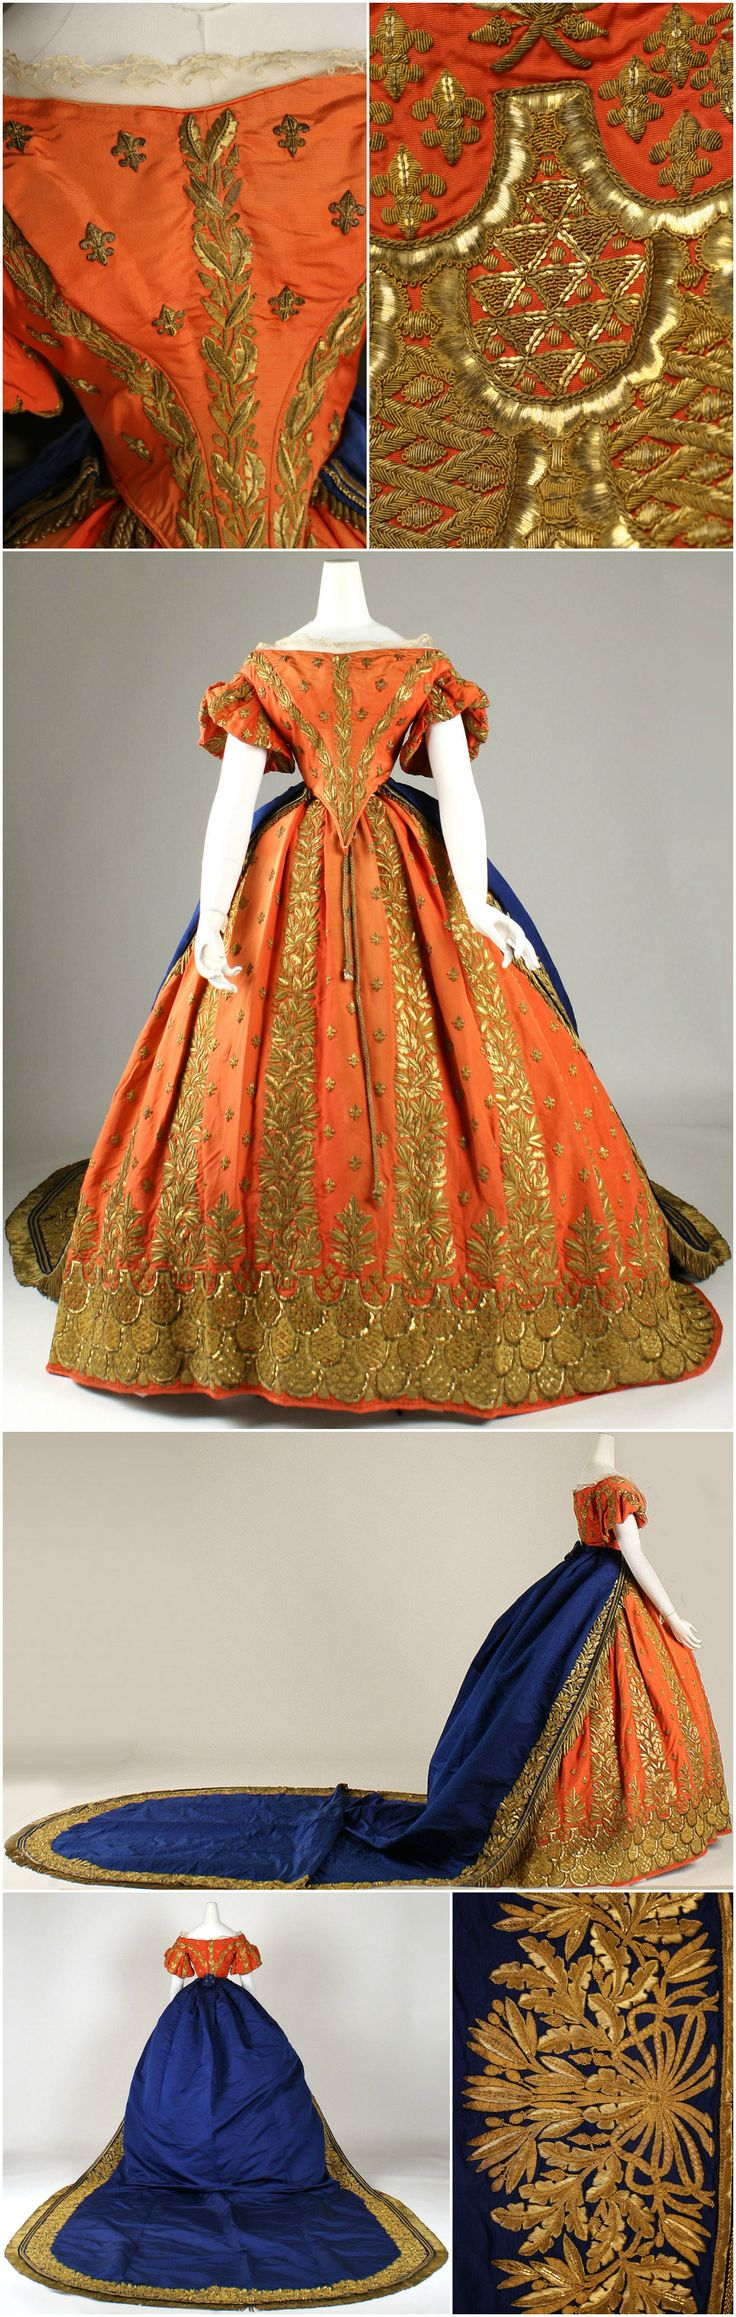 Court ensemble, Italian, 1857-60, at the Metropolitan Museum of Art. Silk, gold. CLICK THROUGH FOR BIGGER IMAGES.